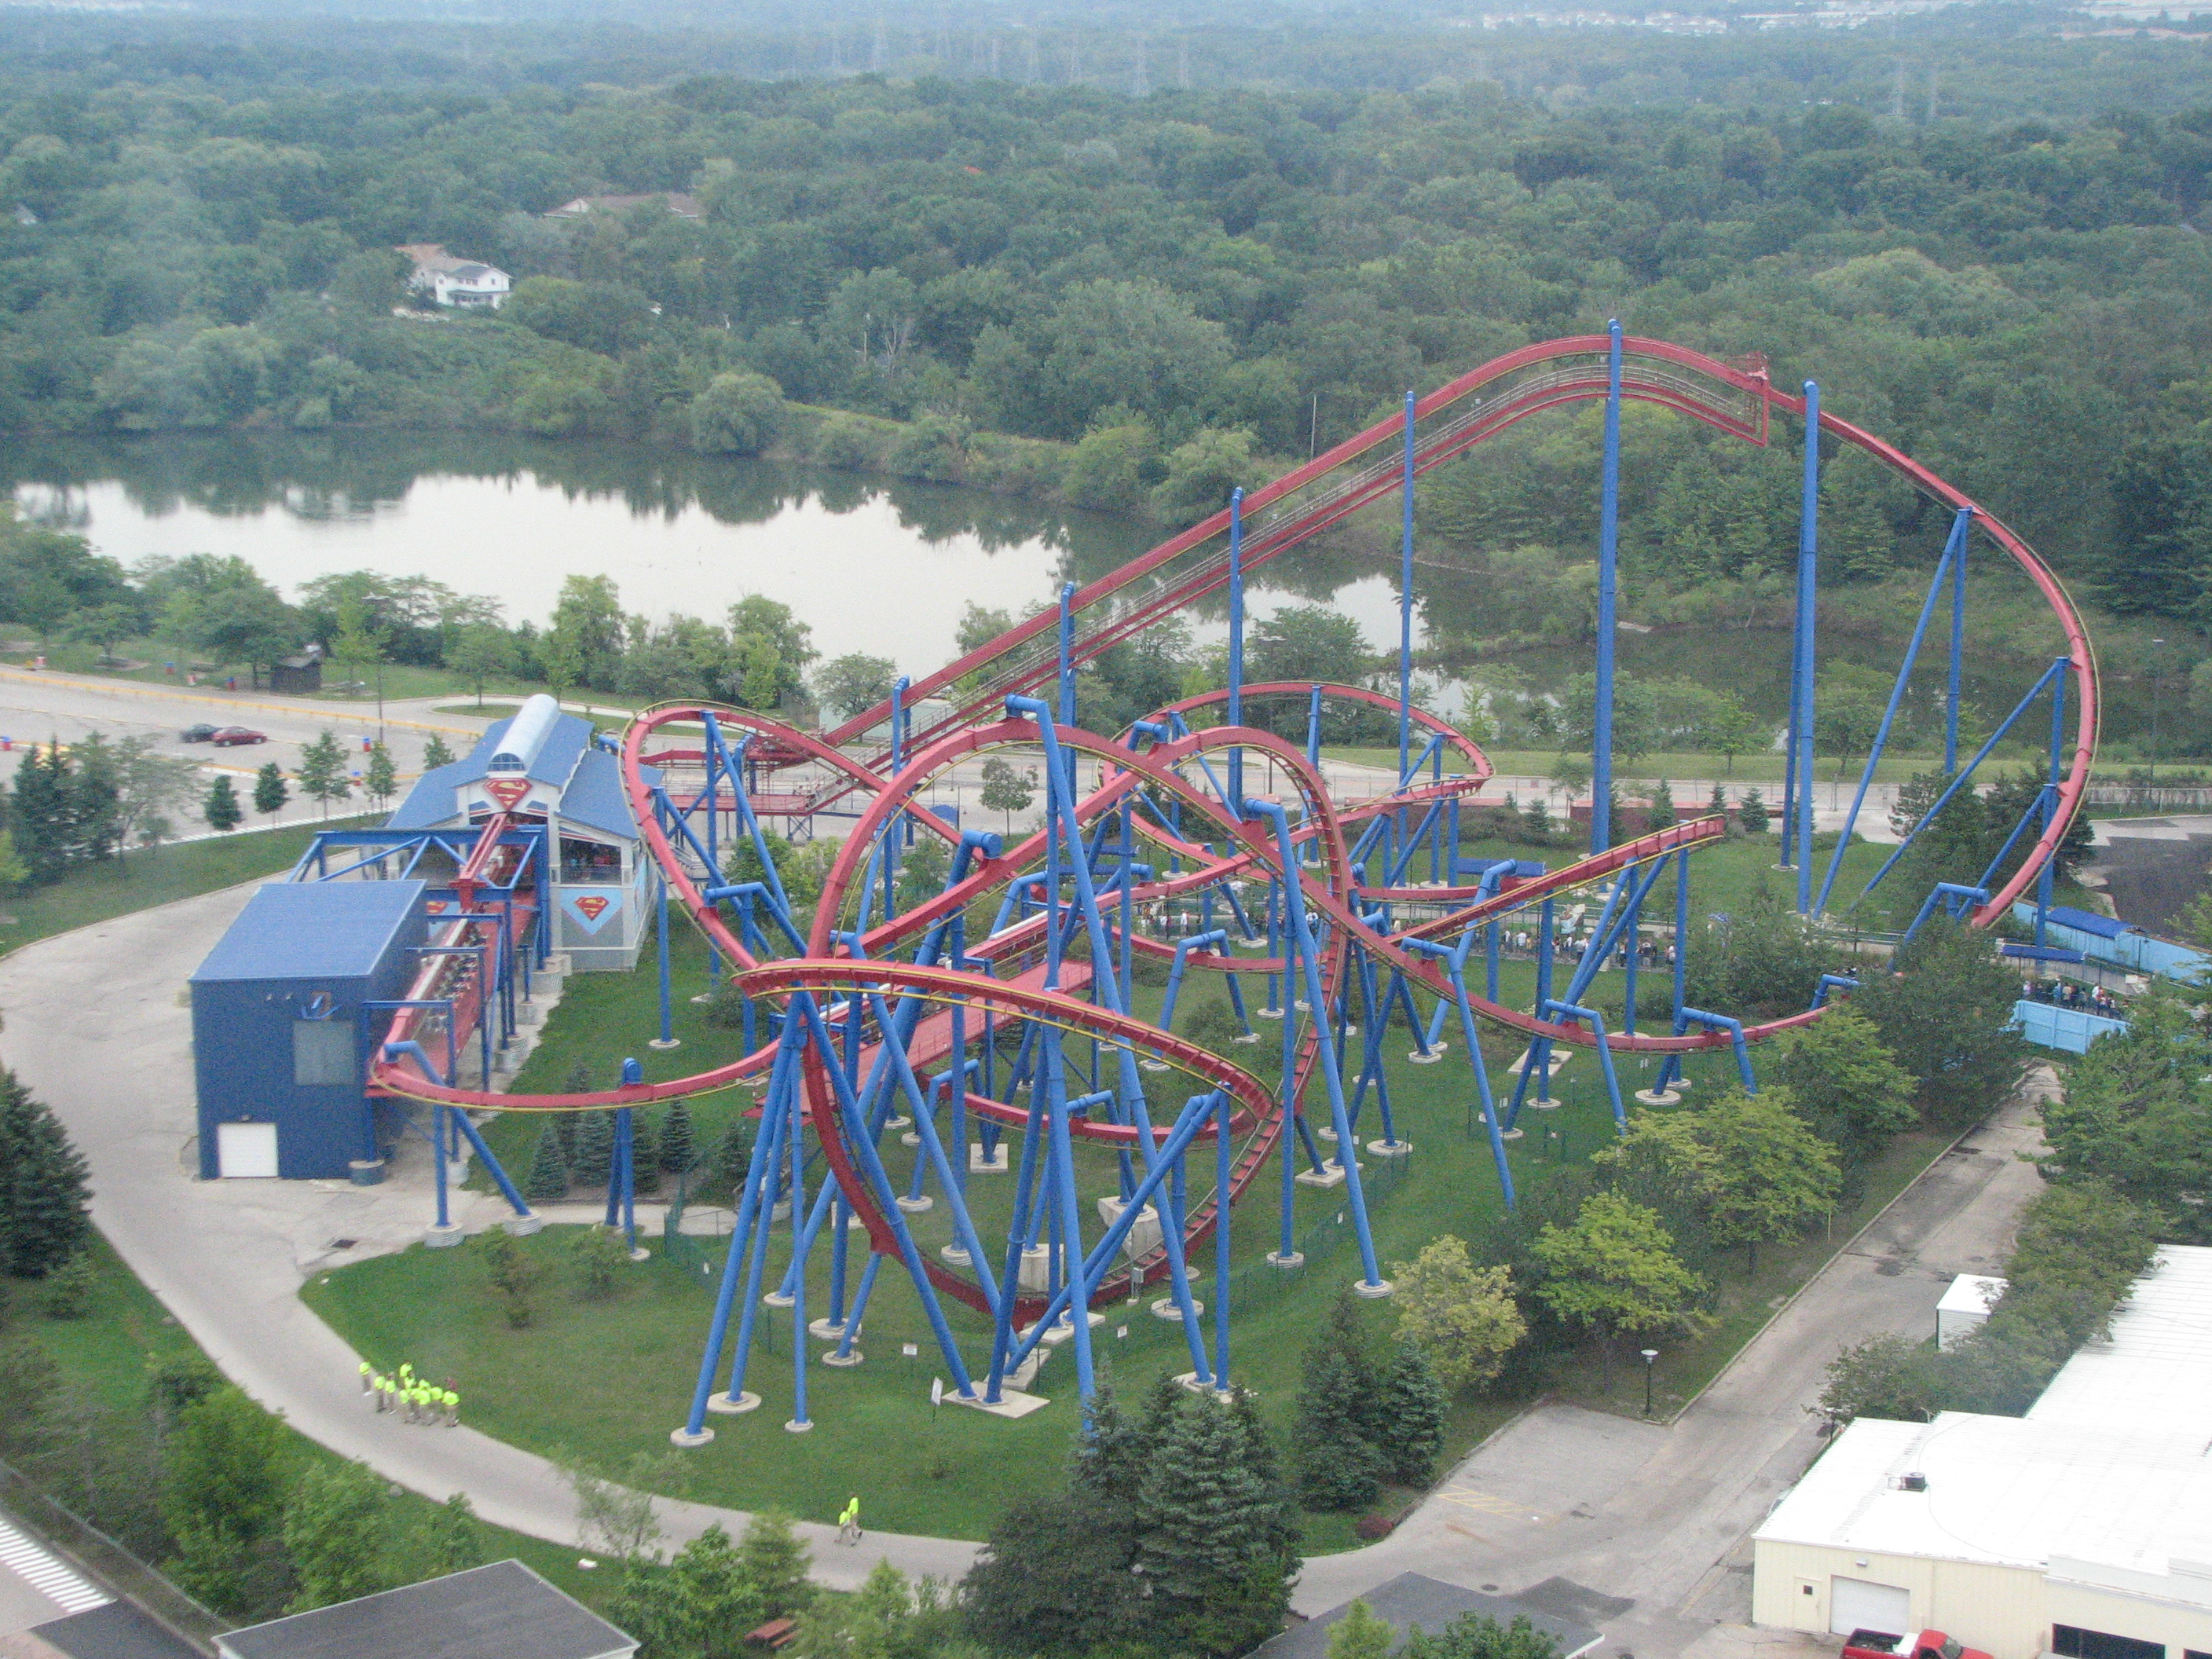 Have some fun at Six Flags Great Adventure and Wild Safari ...